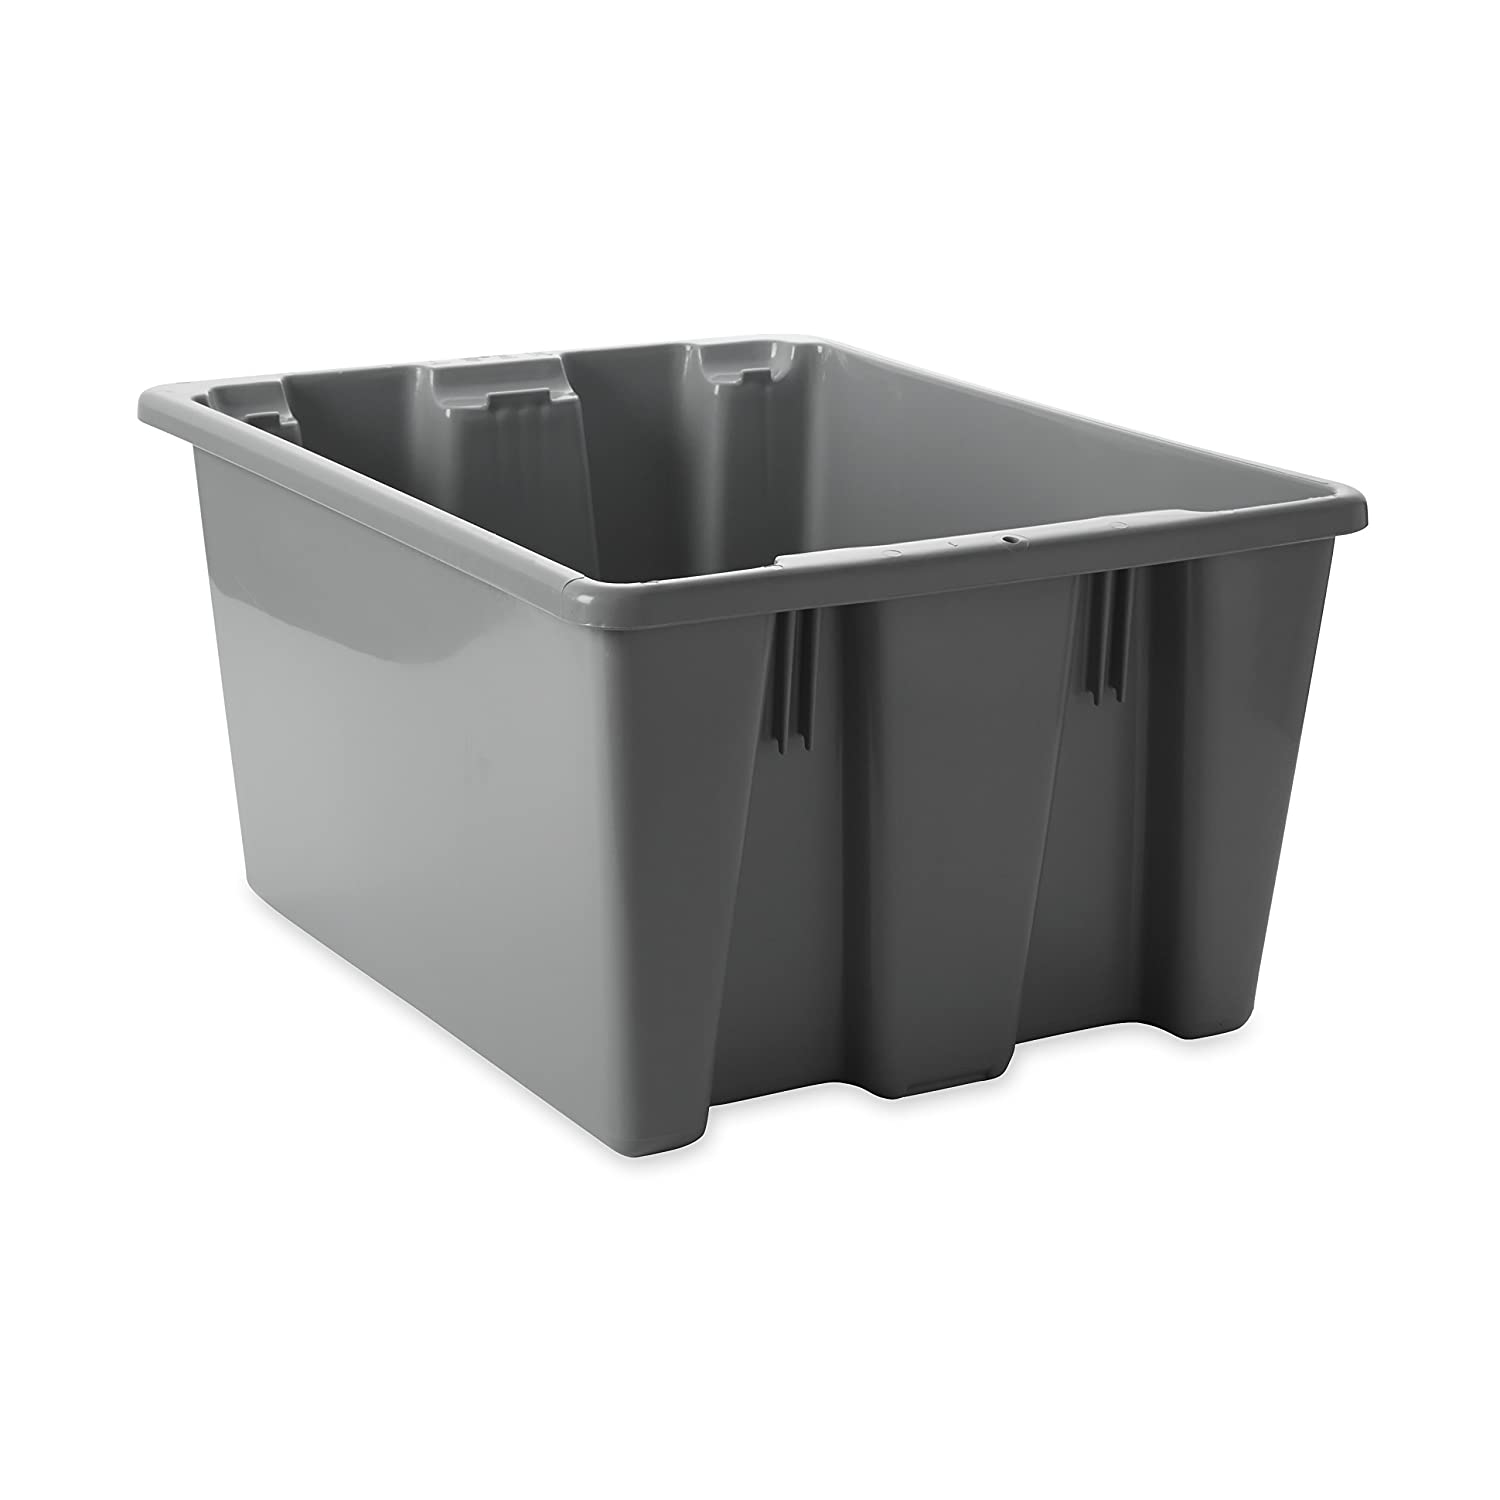 Rubbermaid Commercial Palletote Storage Box, 1-3/10 Cu. Ft, Gray, FG172100GRAY